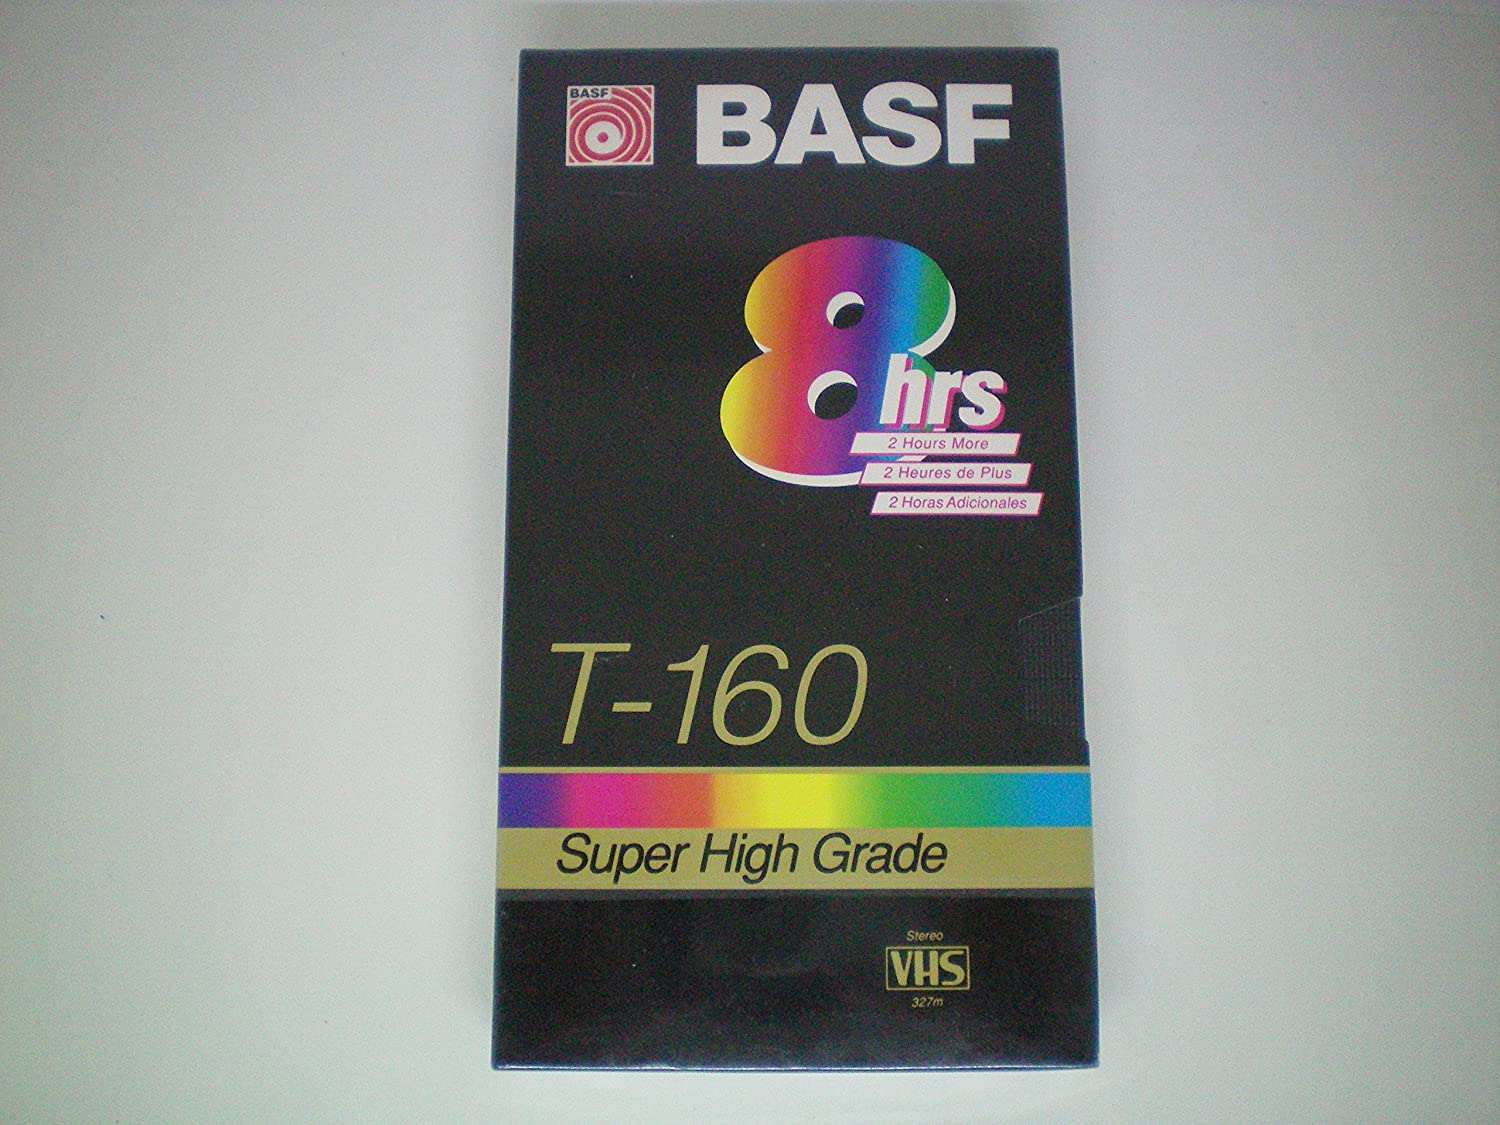 BASF T-160 Extra Quality 8 Hour Blank VHS Video Cassette Recording Tape VHS Tape